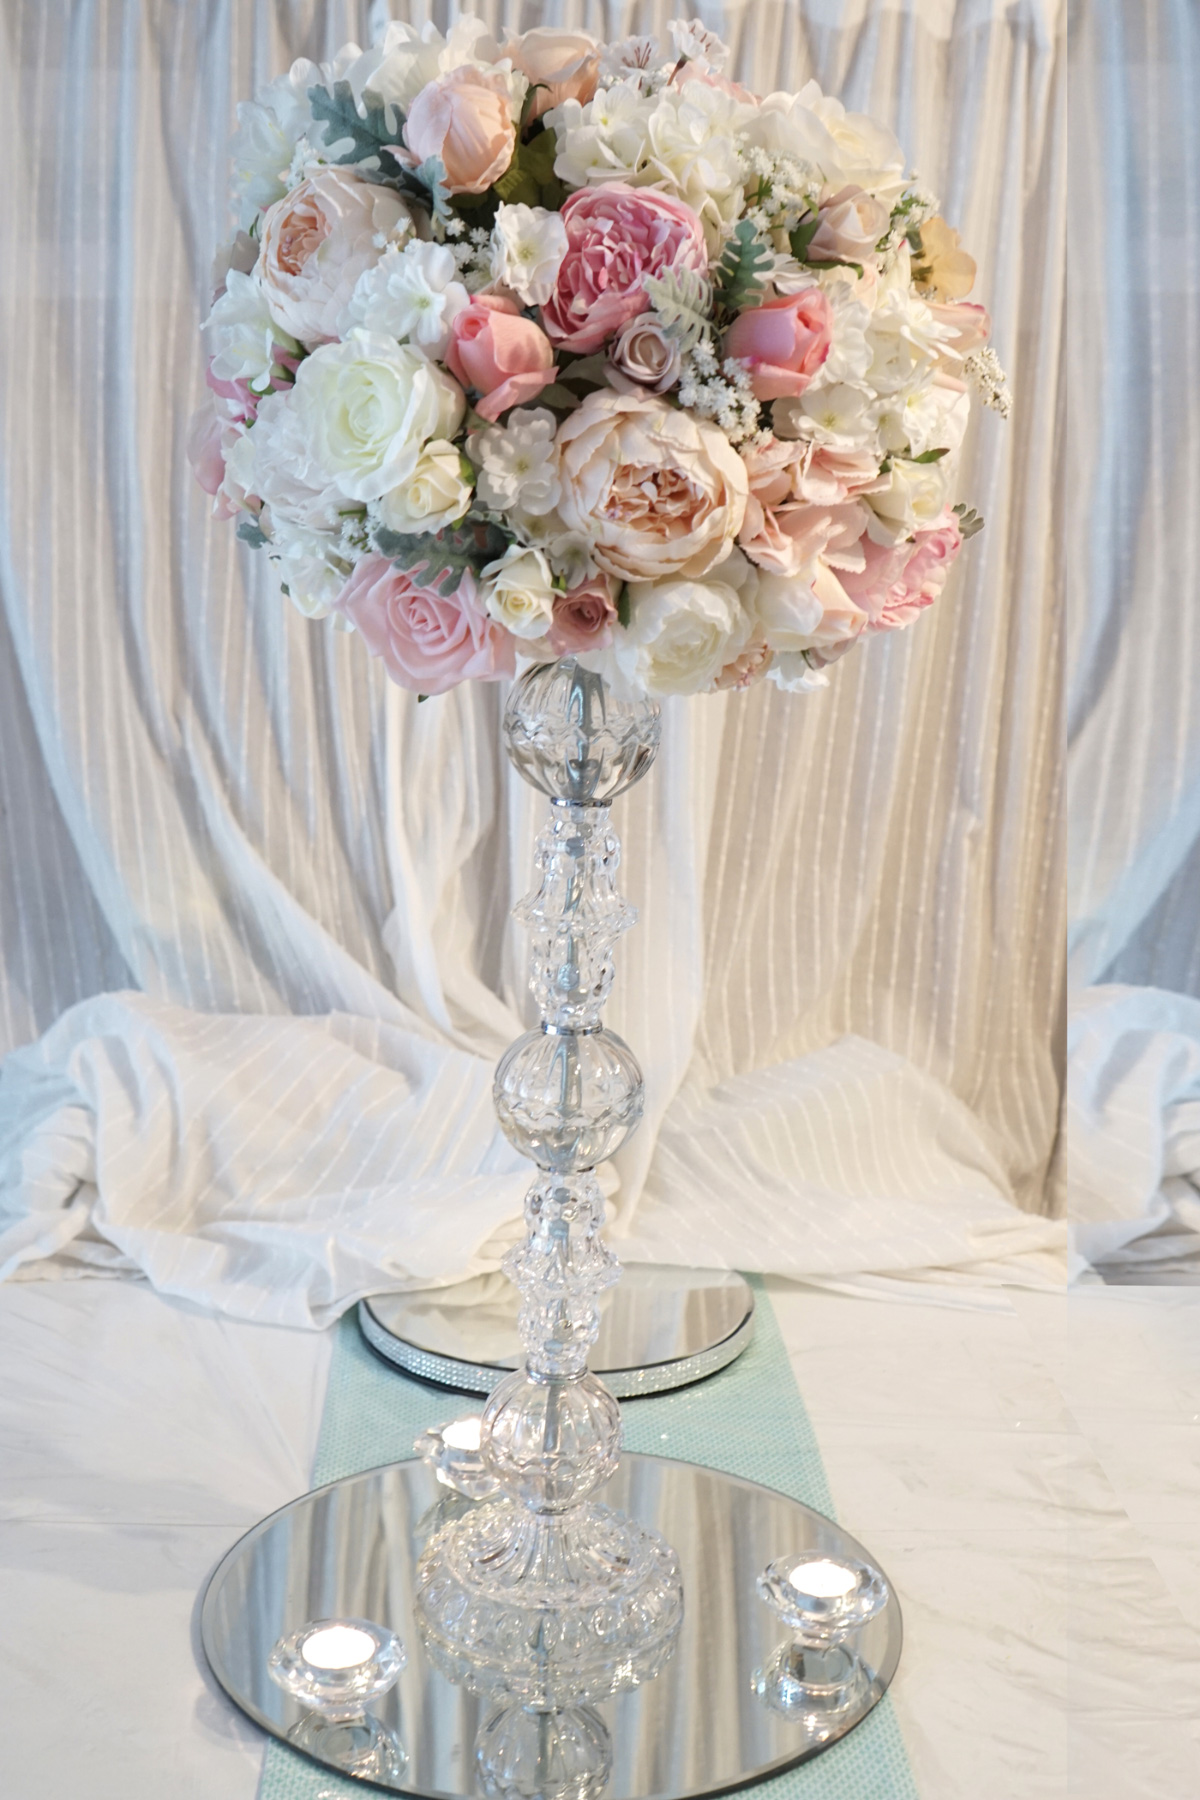 Photo courtesy of: foxesworld.ml If you're looking for a beautiful, modern centerpiece that is easy on the wallet and is can be done yourself these submerged flower centerpieces are for you!